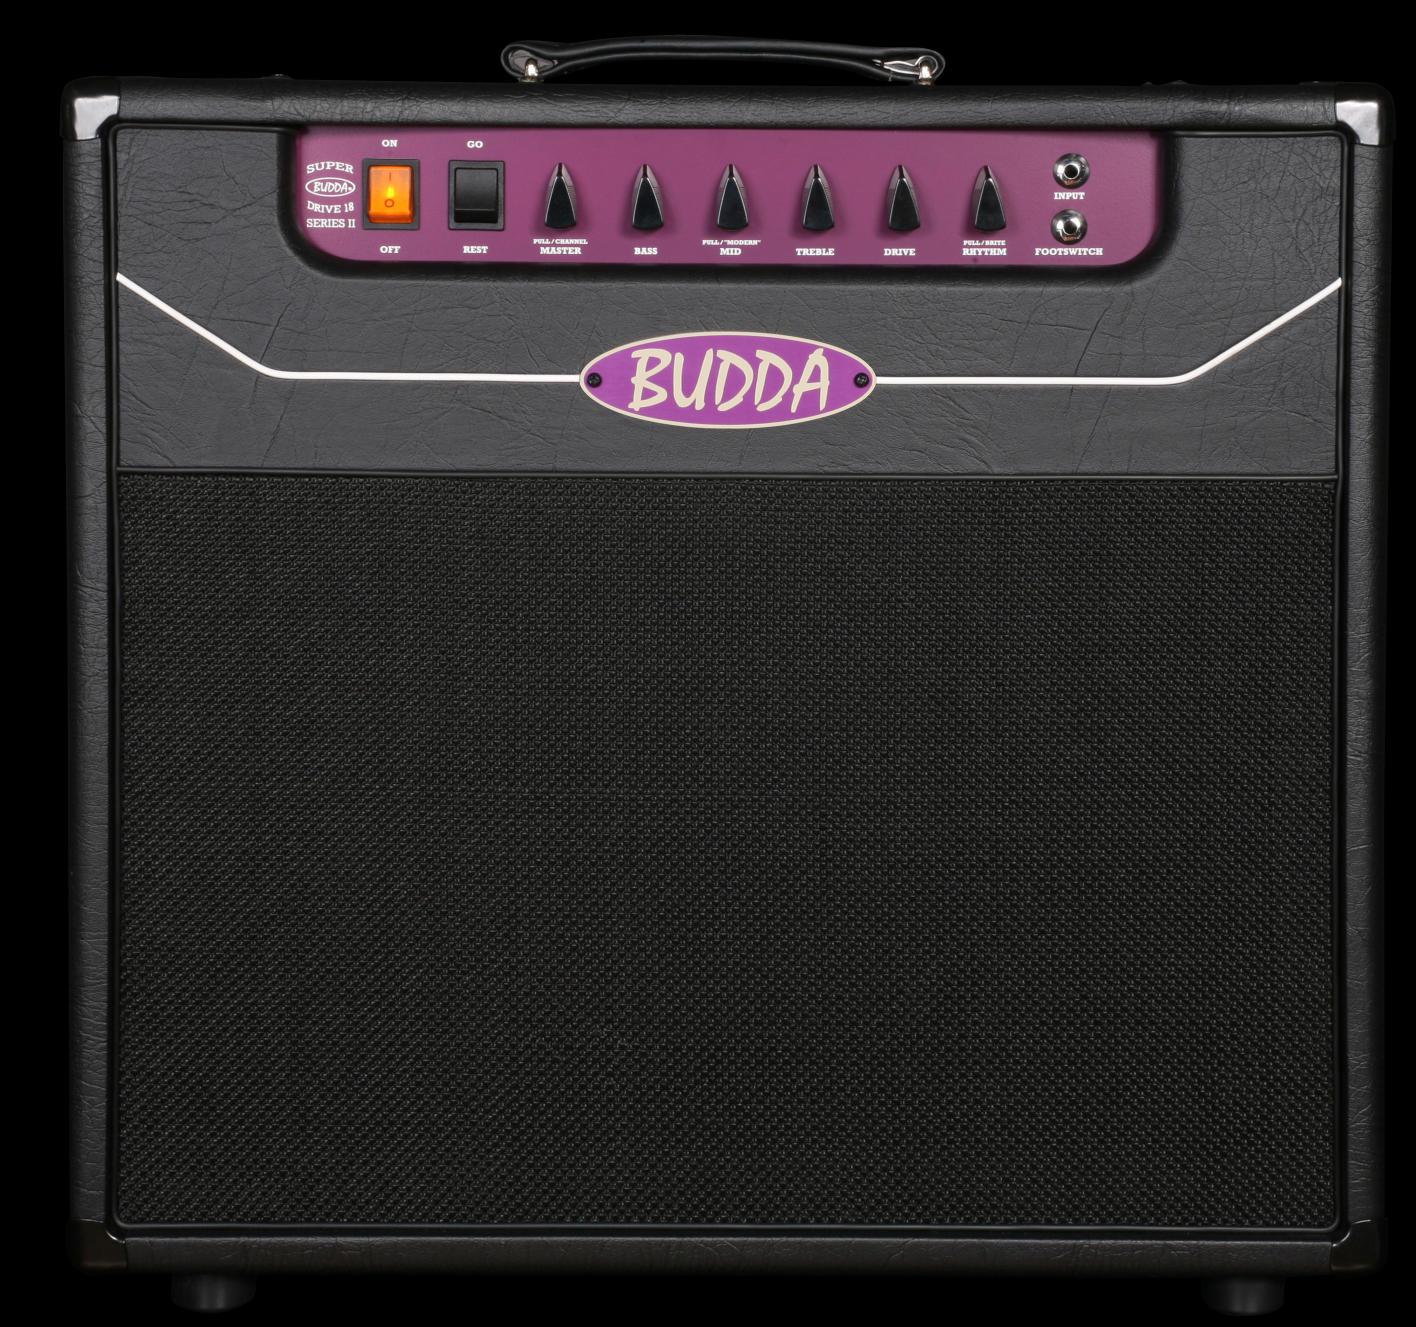 budda superdrive 18 series ii electric guitar amplifier 12 combo 18 watt amp bda13 brs 10200. Black Bedroom Furniture Sets. Home Design Ideas